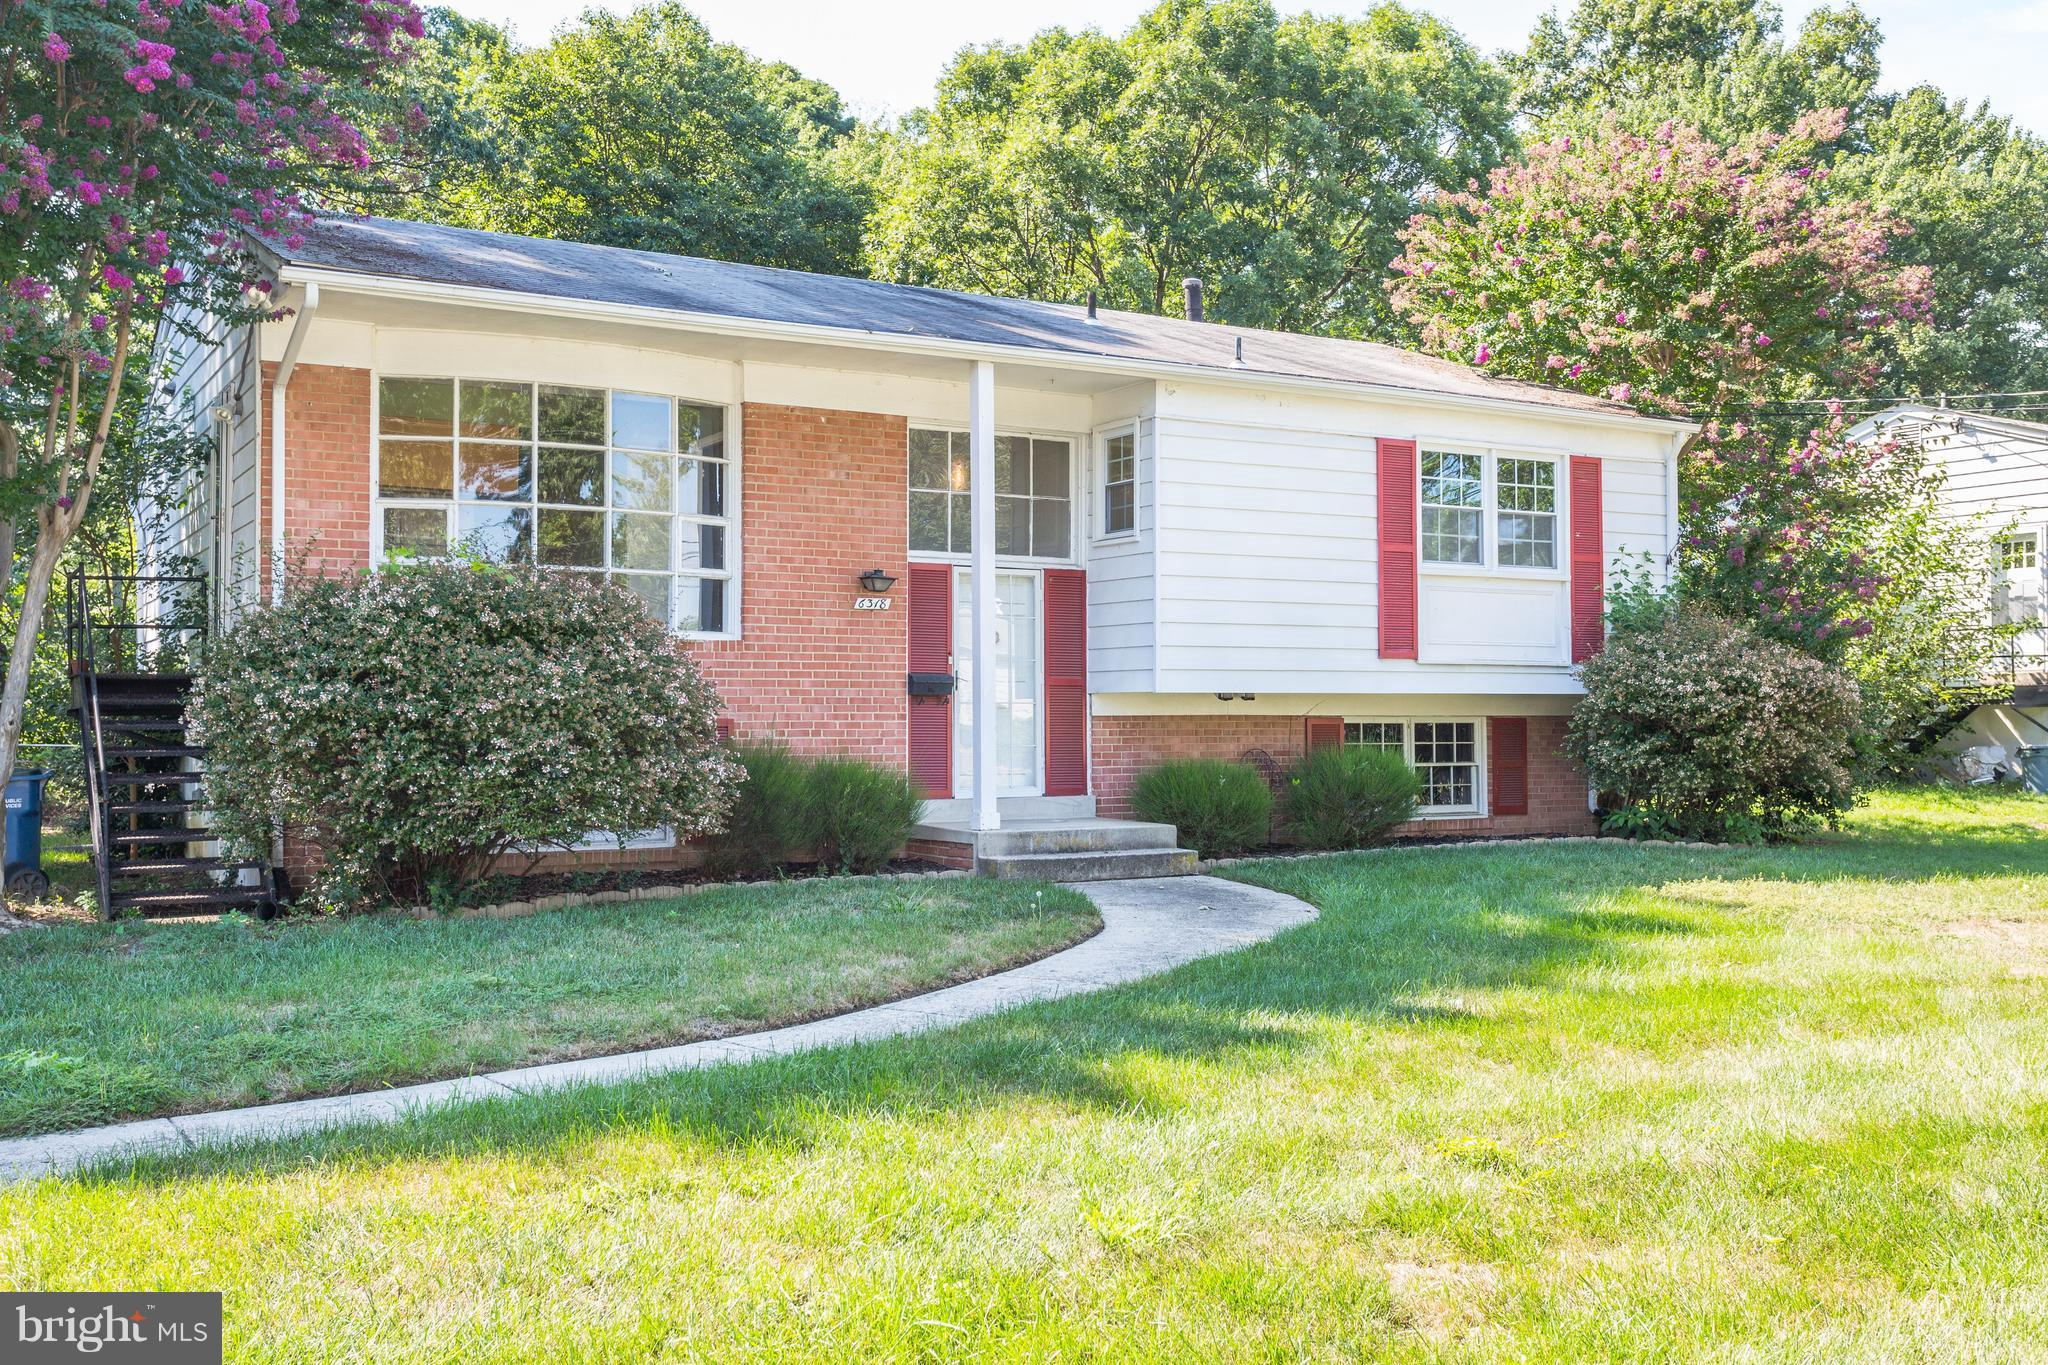 JUST LISTED AND OPEN SUNDAY 9/16 FROM 2-4PM. Incredible opportunity for charming home in the heart of Springfield. 5BR/2.5BA sitting on beautiful flat and grassy lot. Hardwood floors and sunny open living throughout. Perfect proximity to everything including metro, town centers, shopping, major highways, restaurants, and Lee HS.